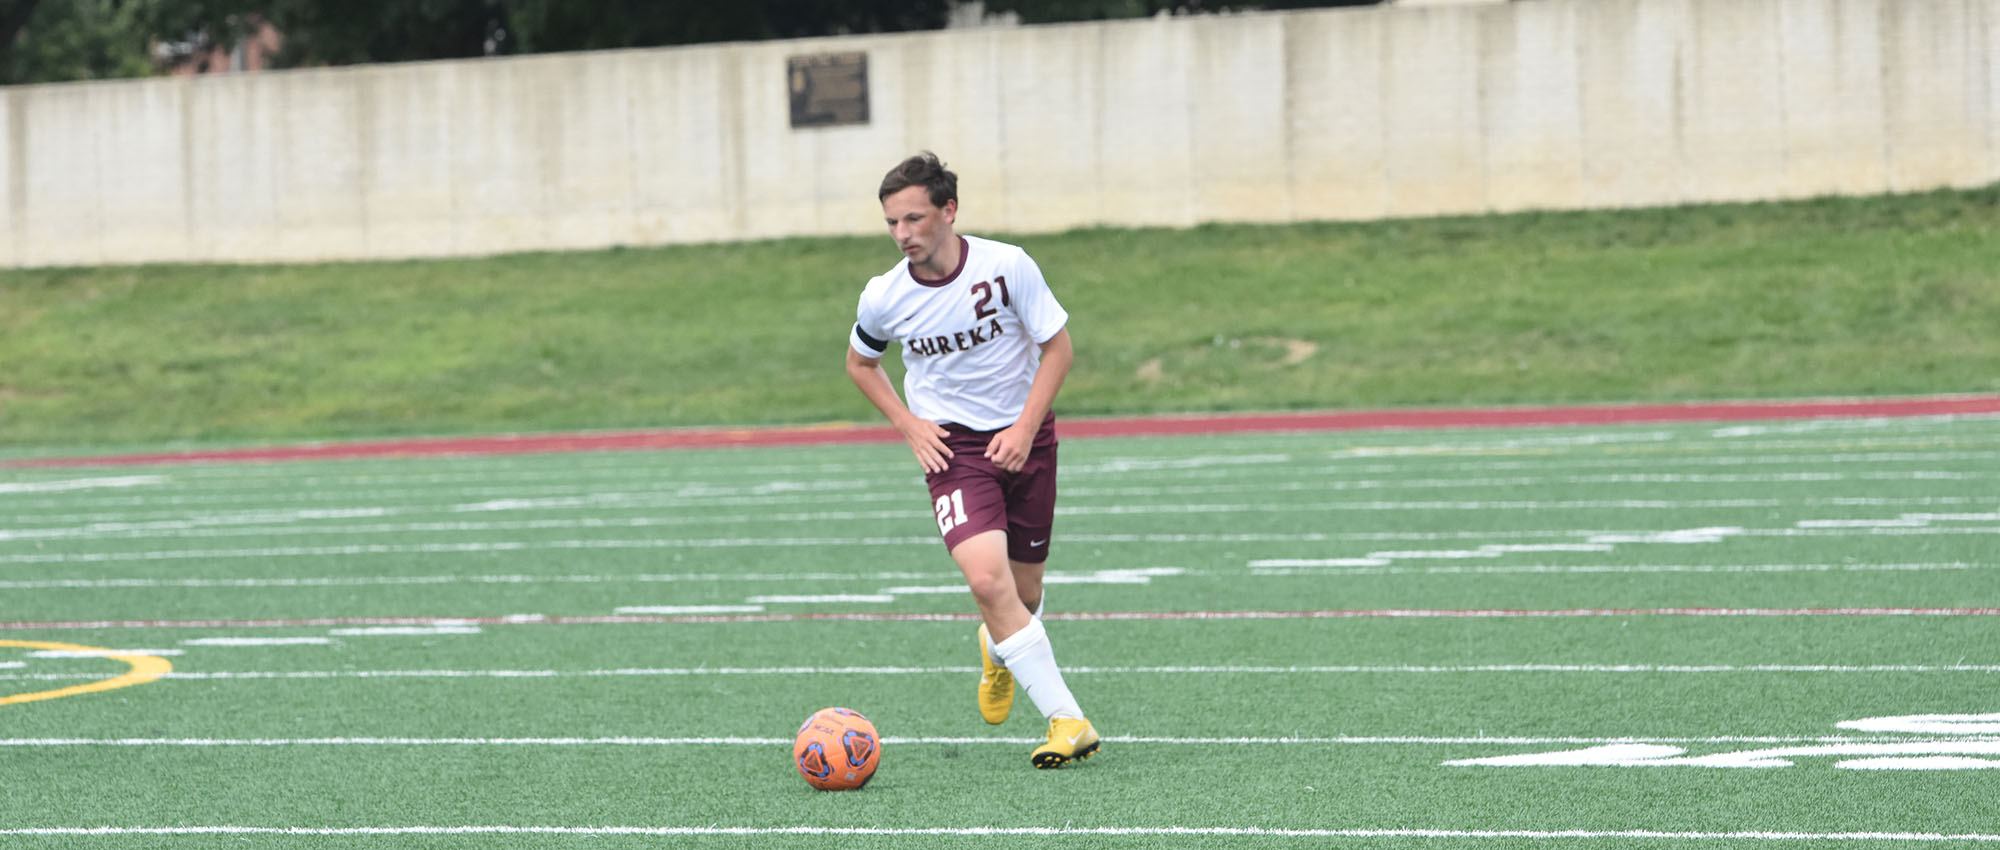 EC Men's Soccer Draws with Lincoln Christian, 2-2